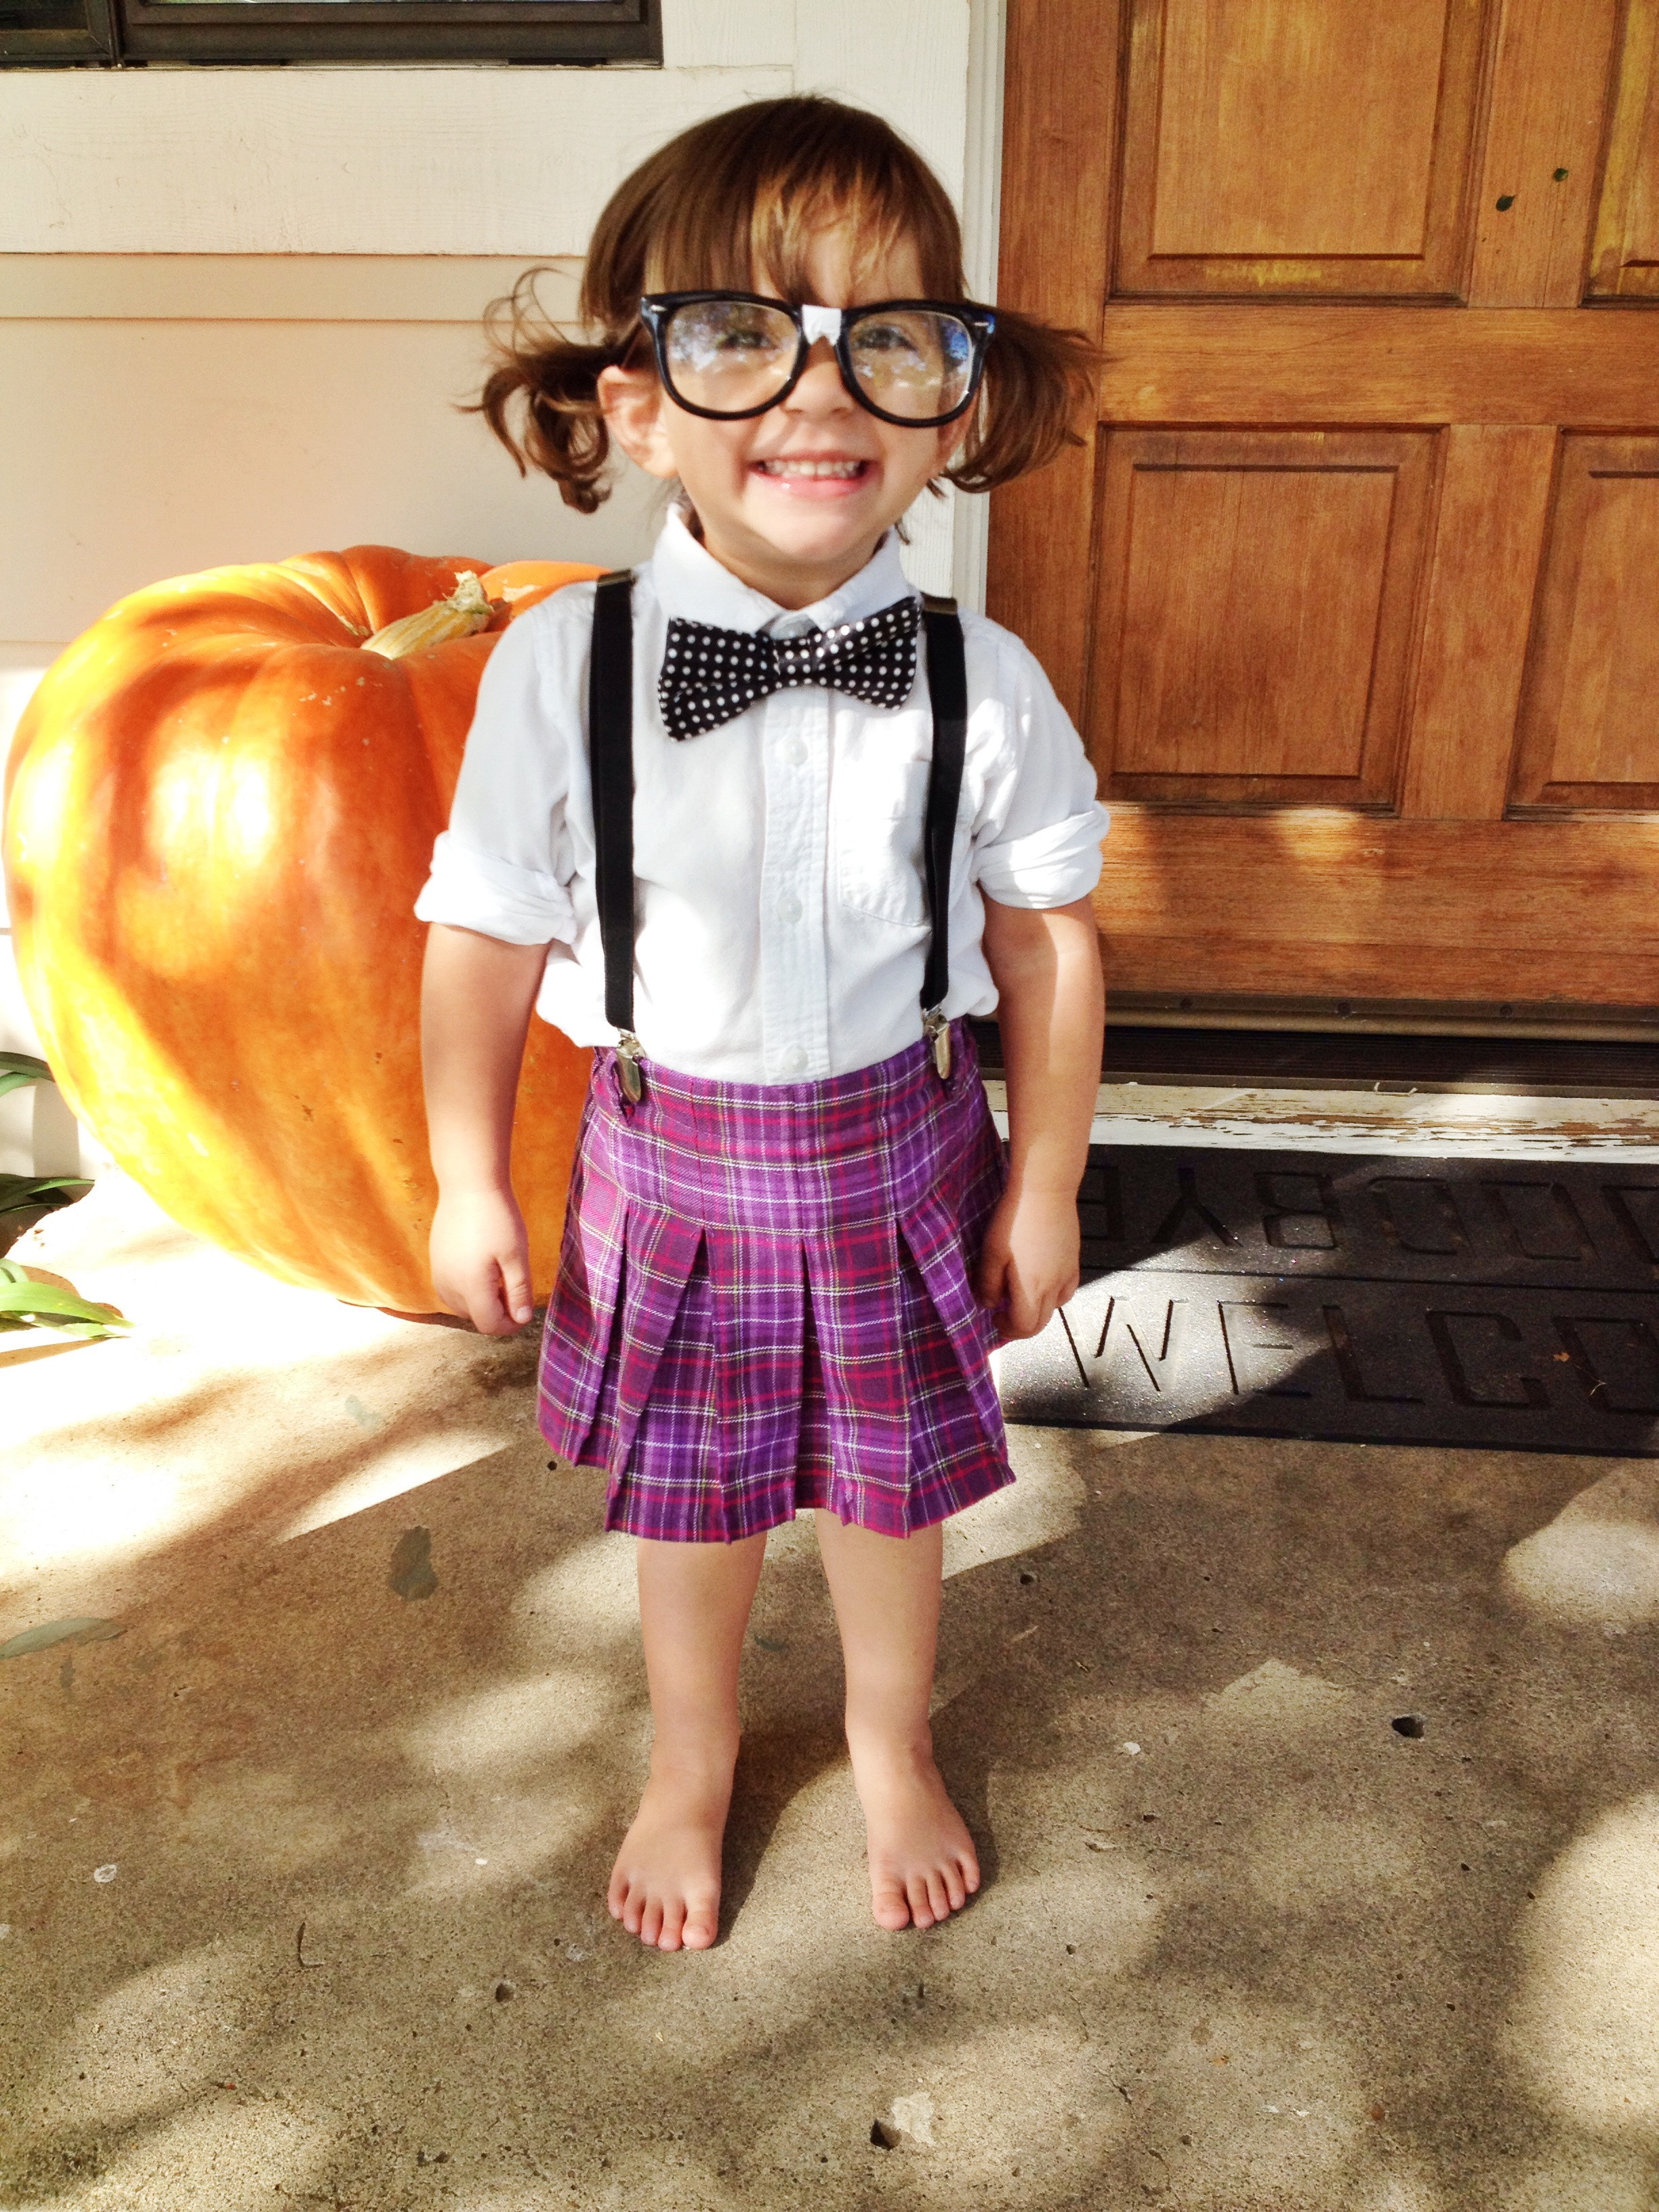 Best ideas about Nerd Costume DIY . Save or Pin Thrifting Now.